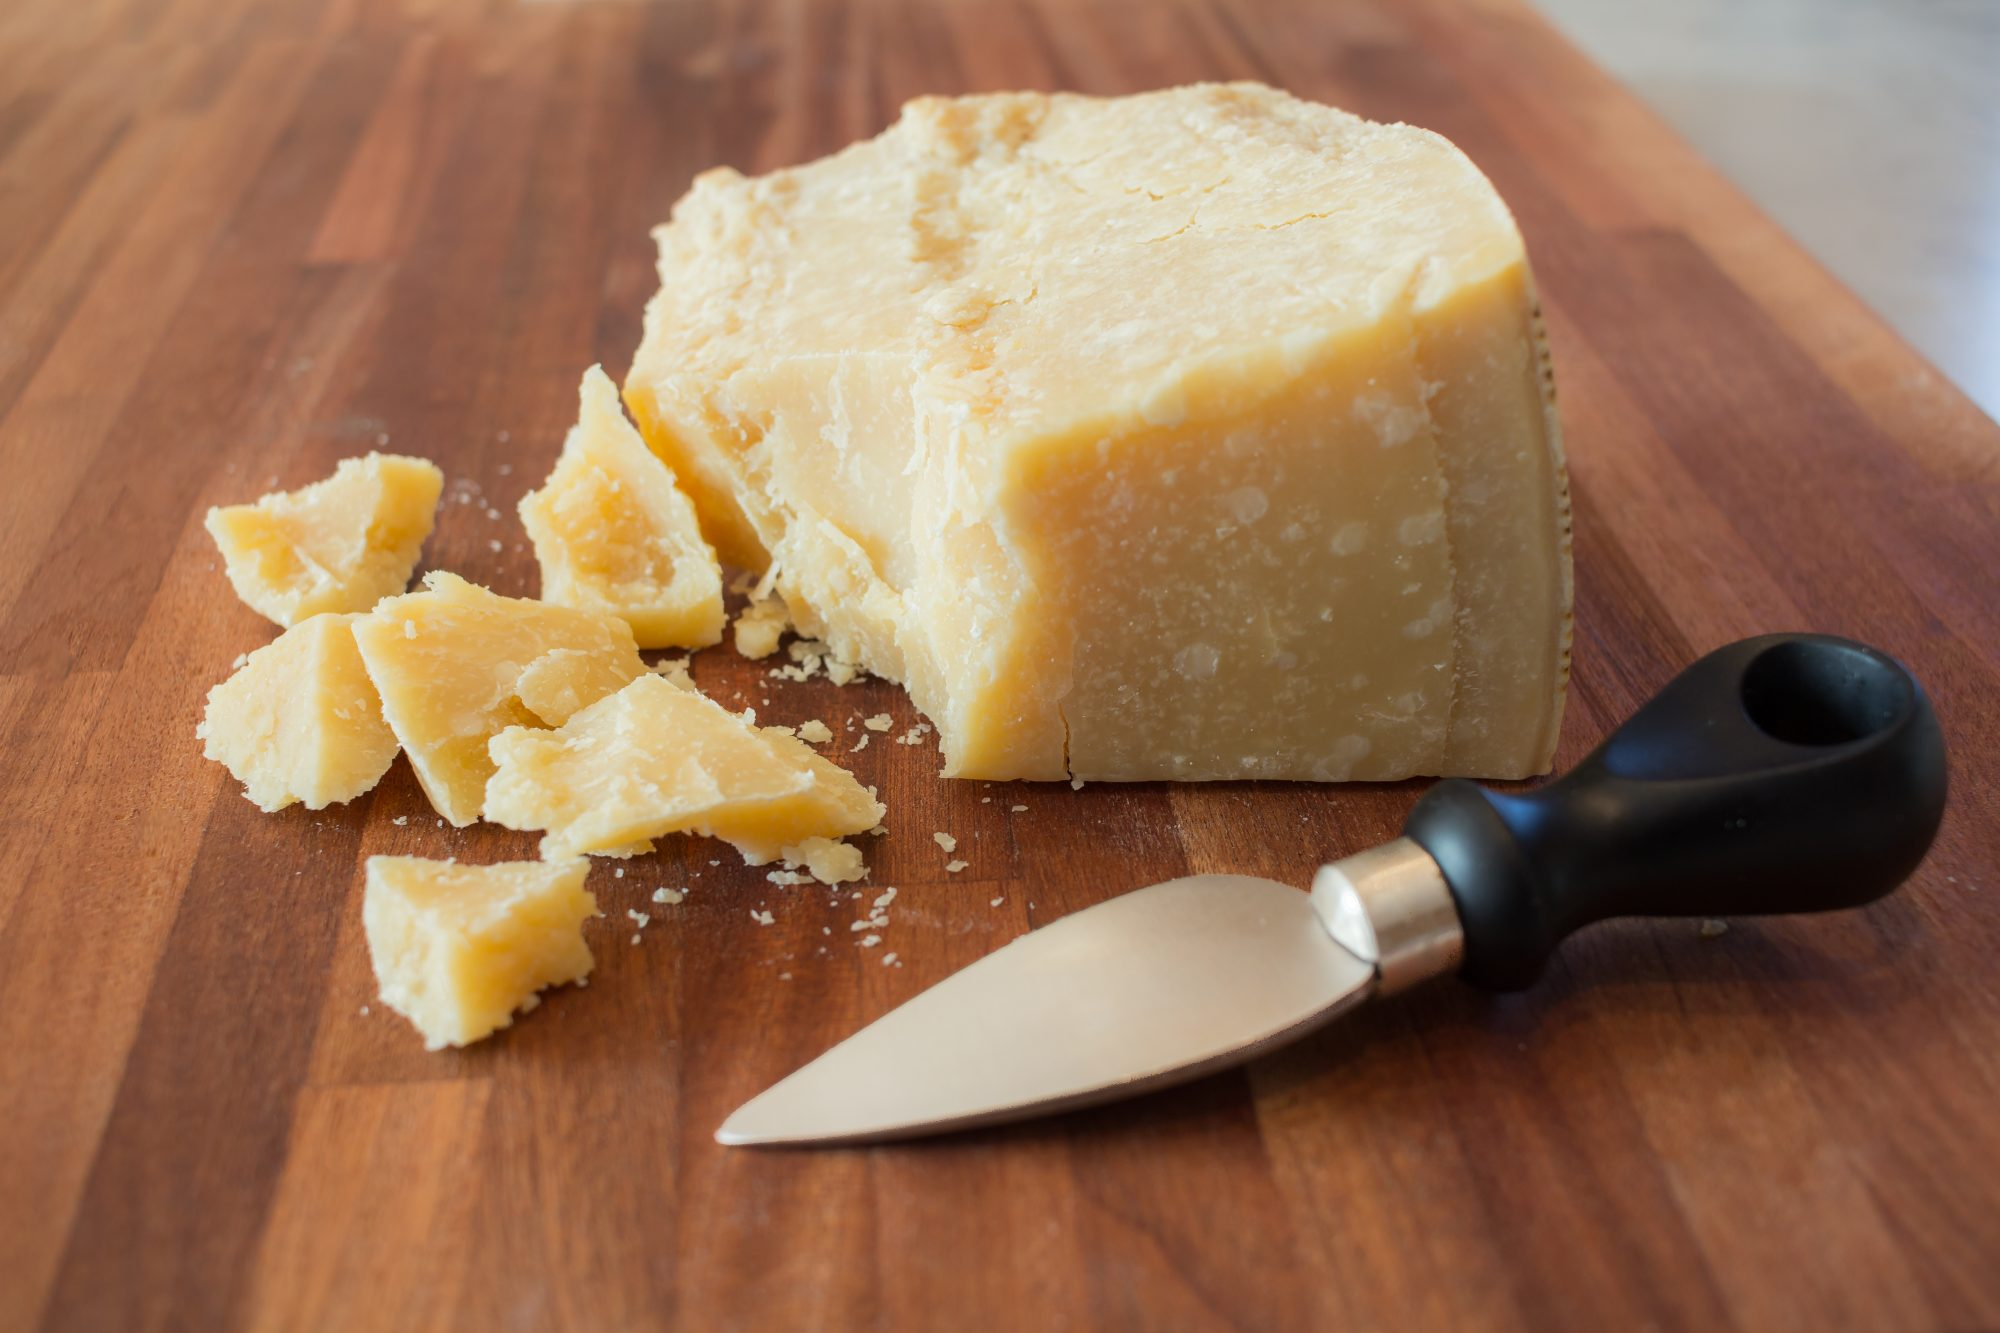 pieces of parmesan cheese on a wooden cutting board